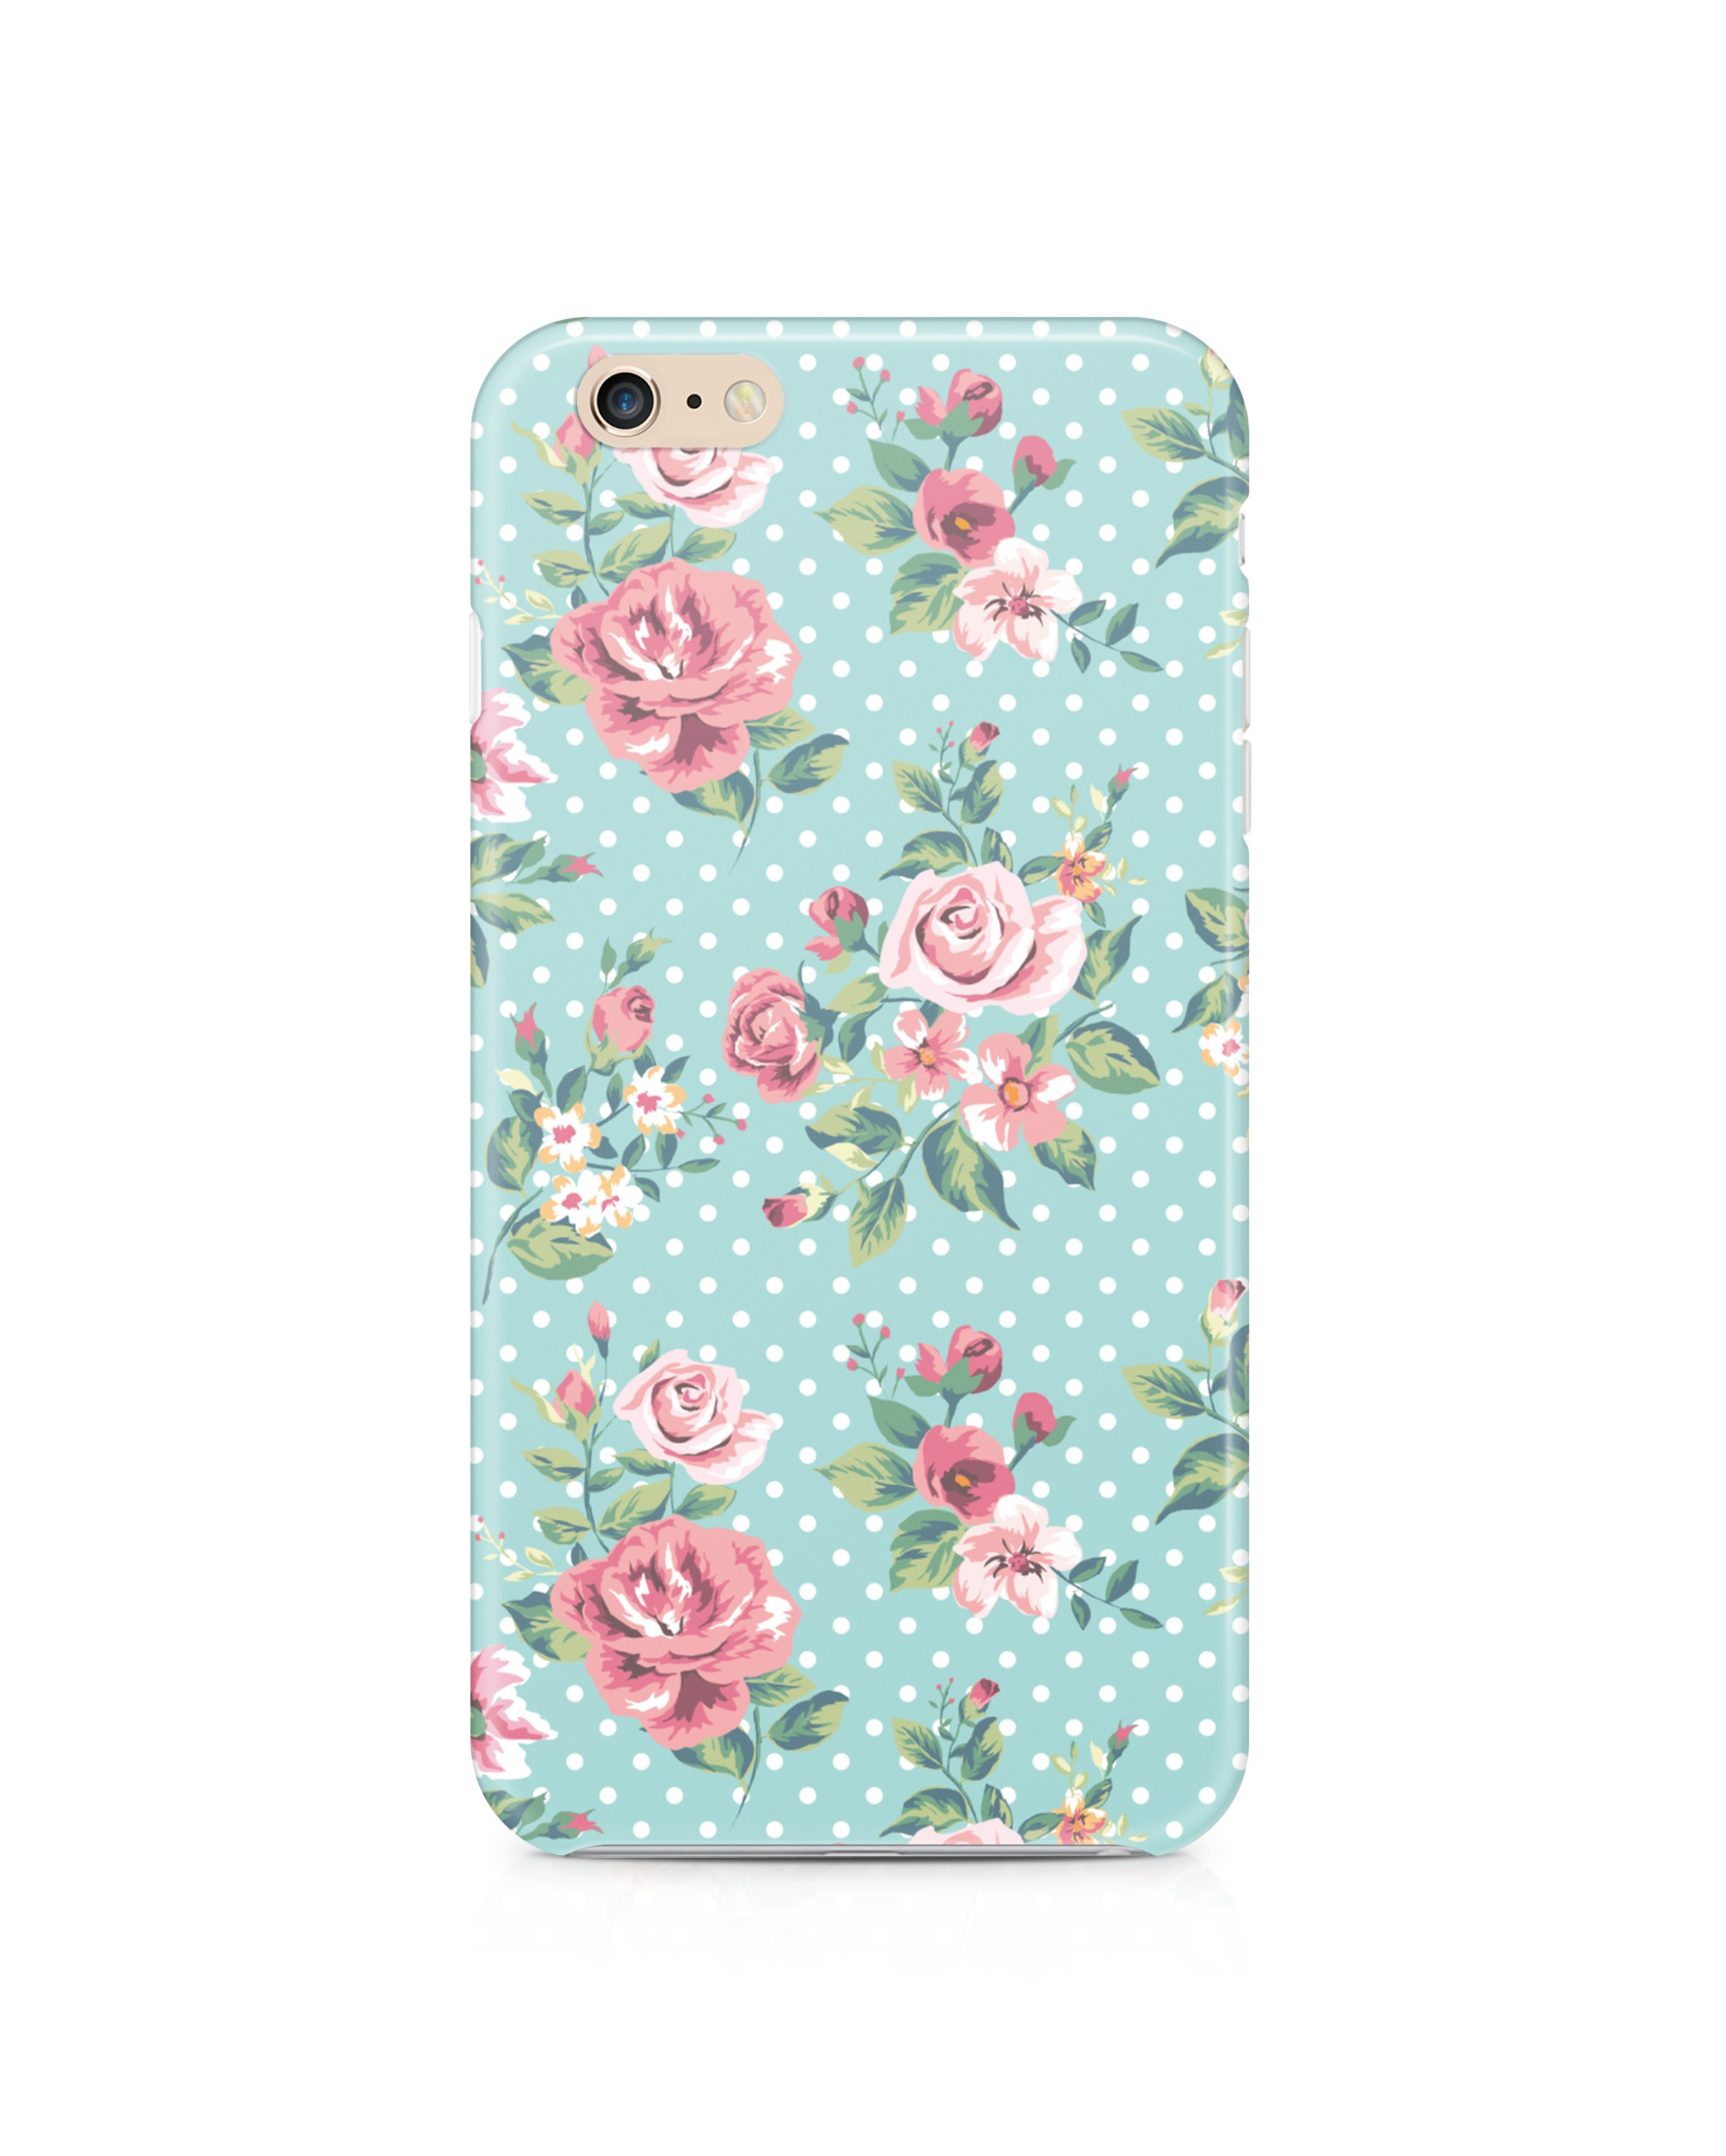 Etui iPhone Dots & roses - 27766